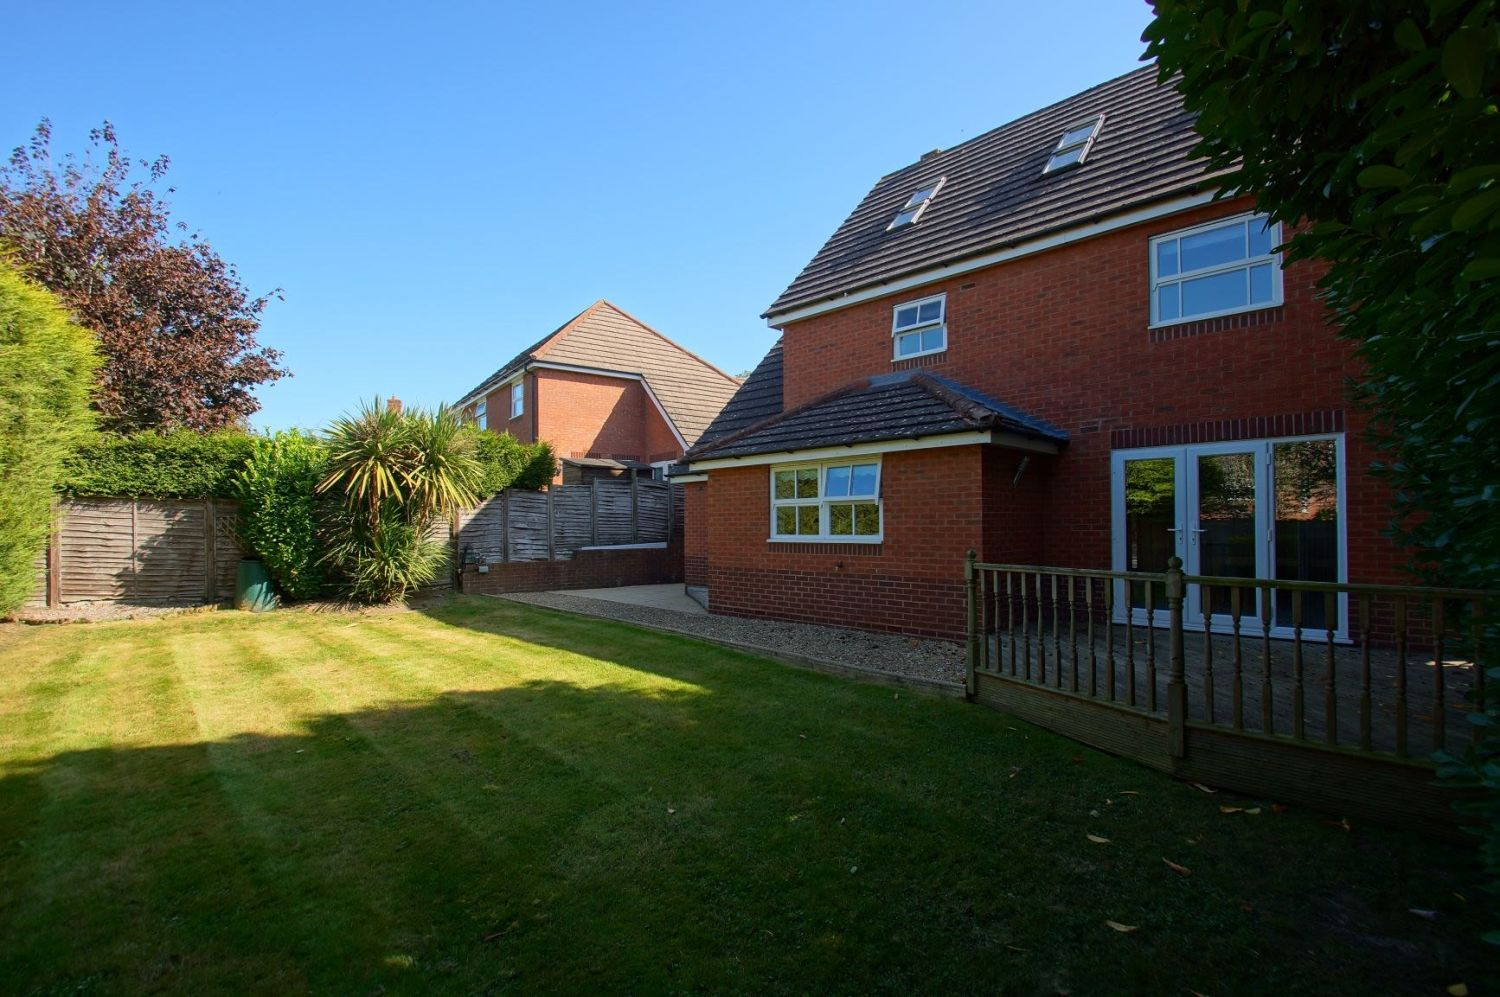 4 bed detached for sale in Acre Lane, Webheath 25